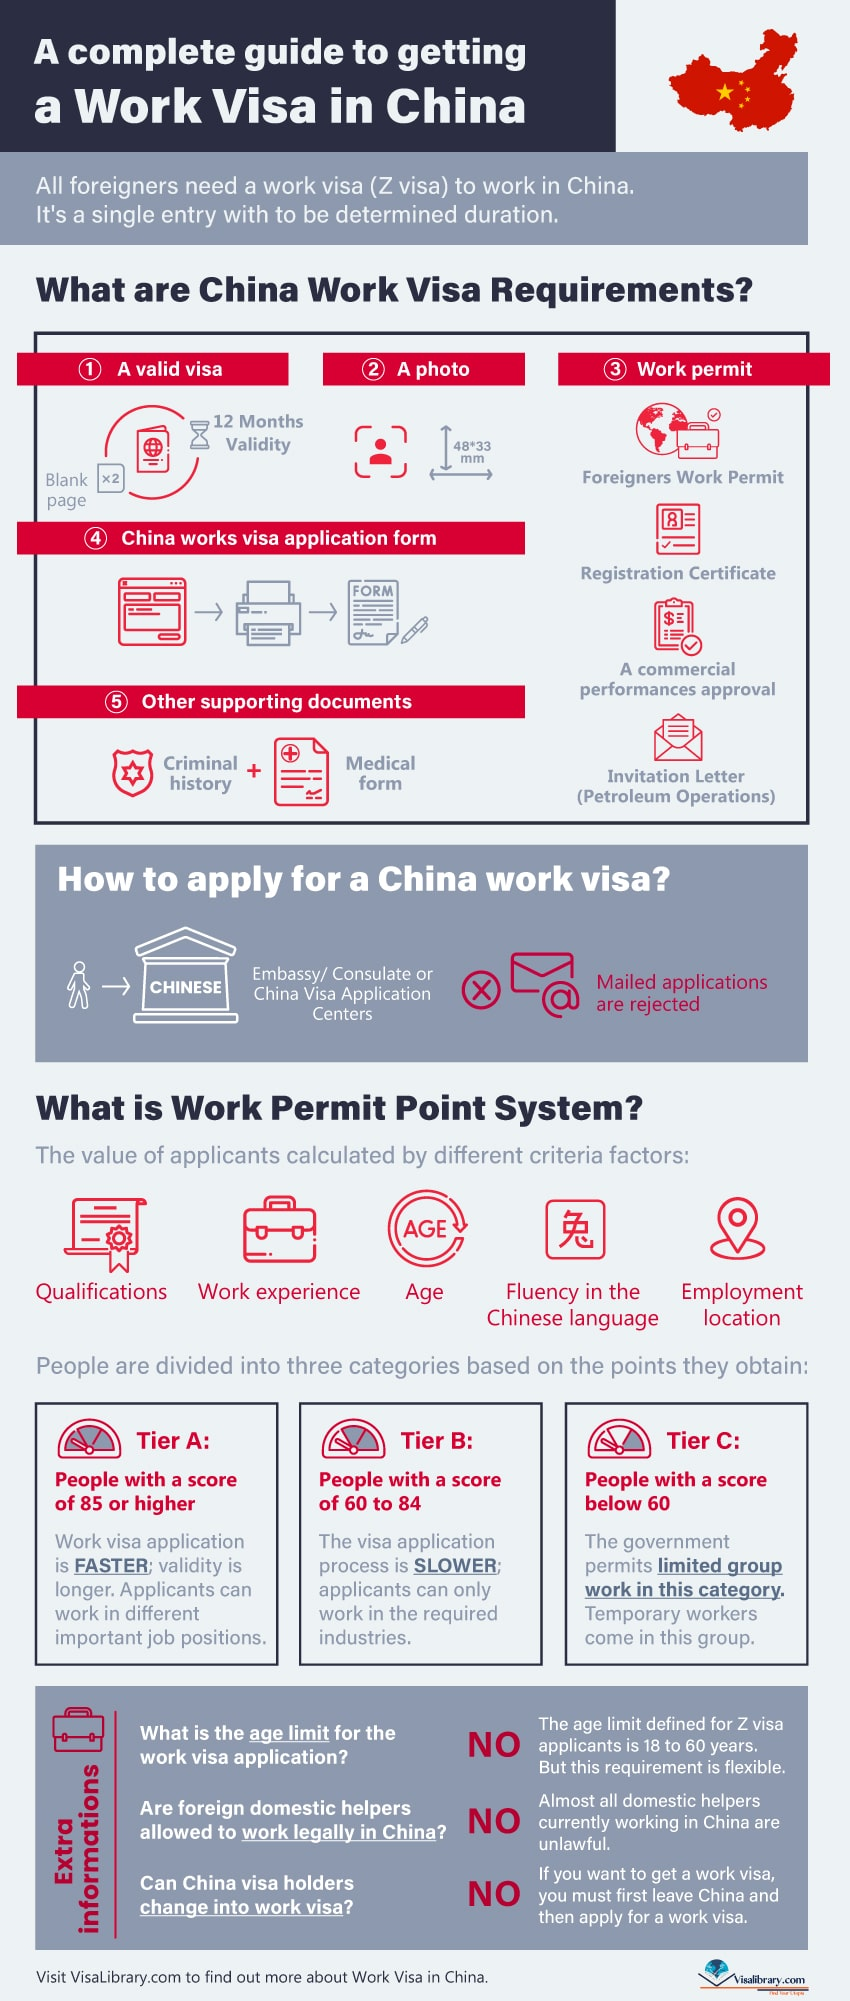 A complete guide to getting a work visa in China